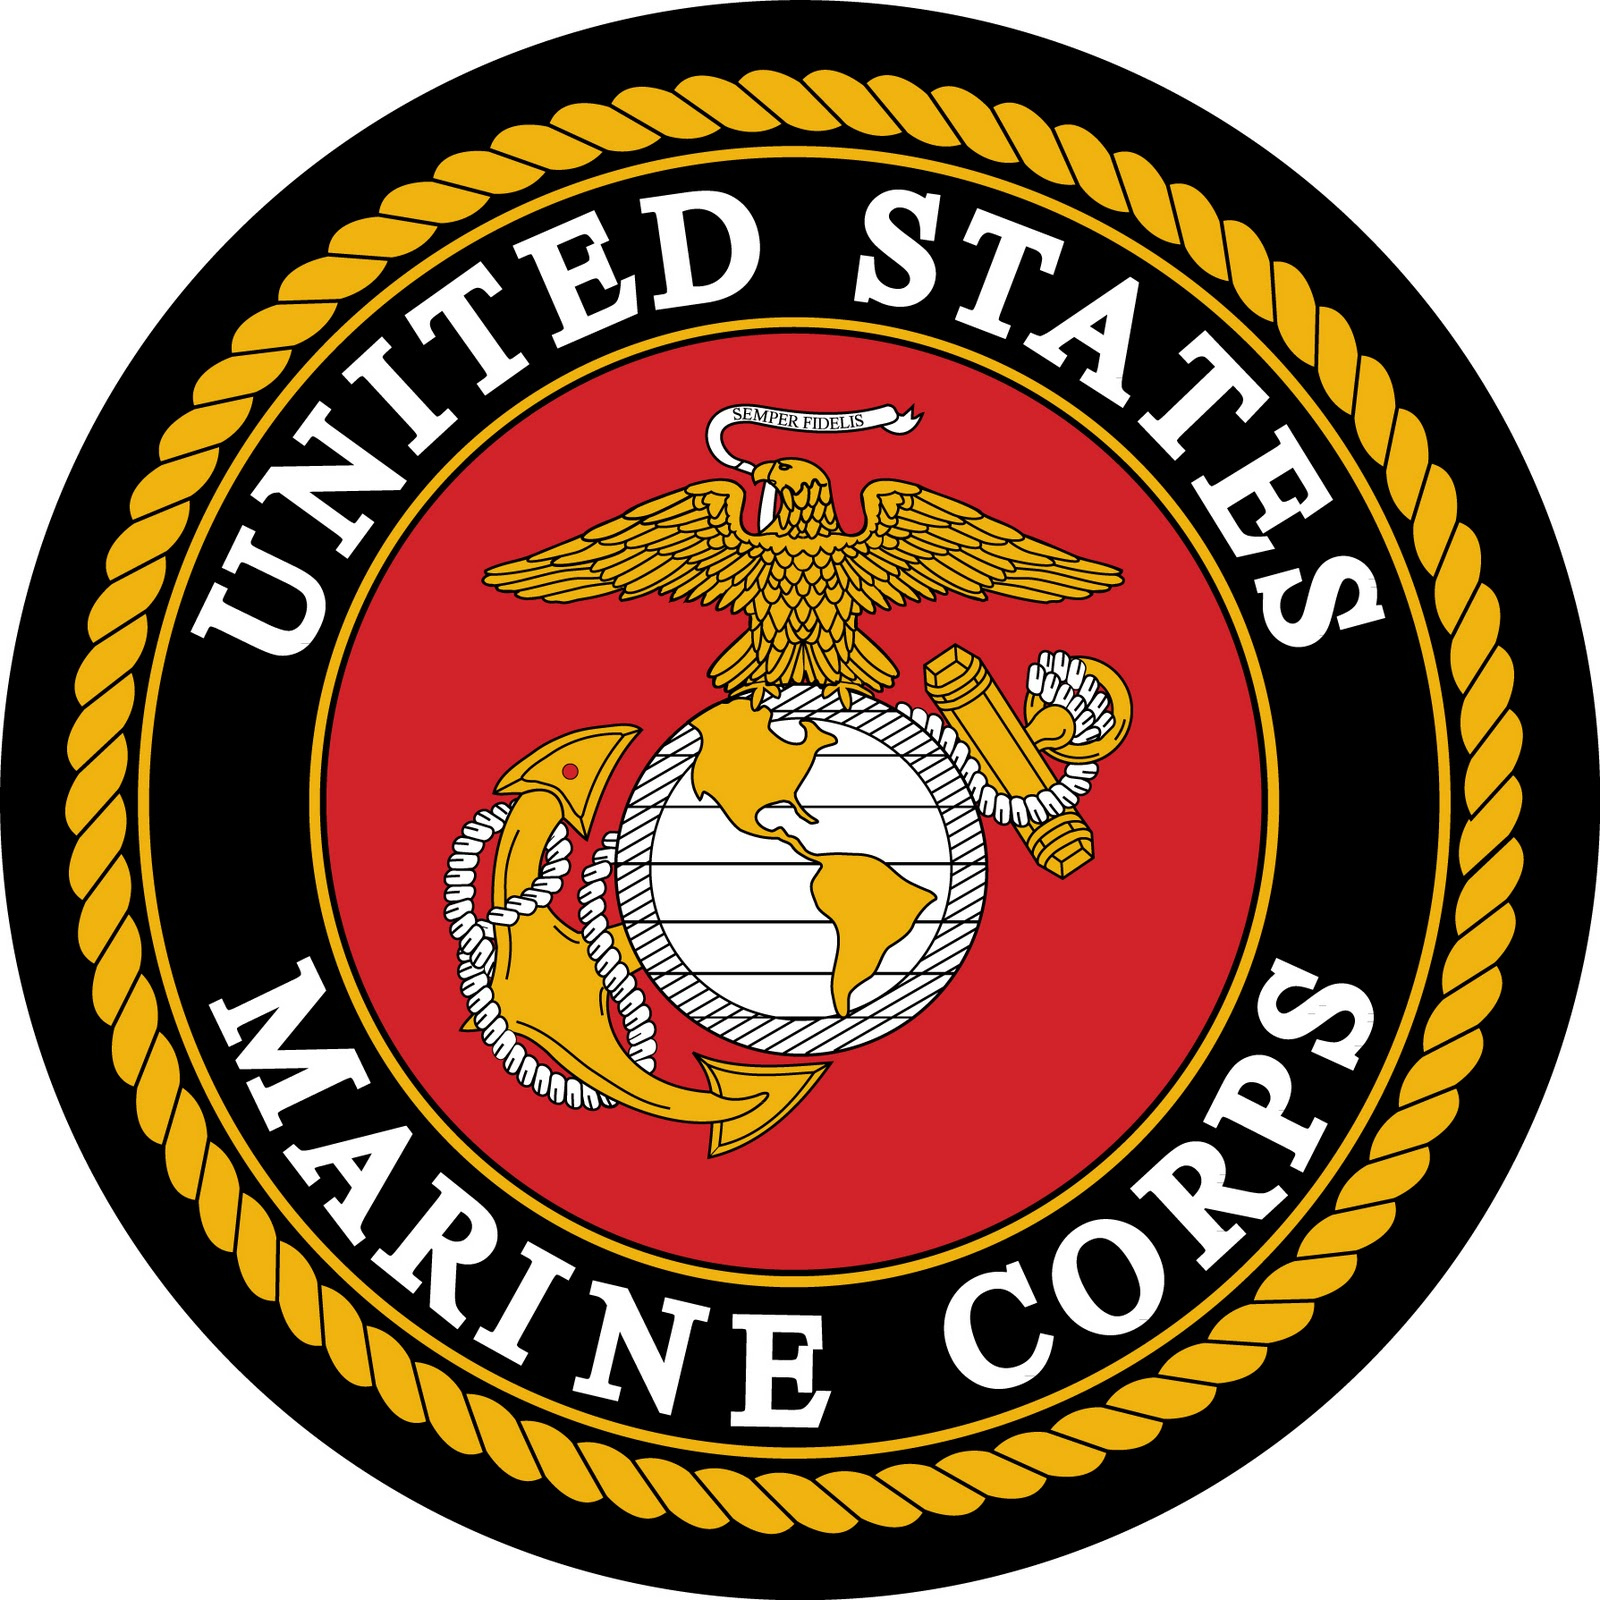 Us marines clipart free picture freeuse library Us Marines Clipart - Clipart Kid picture freeuse library